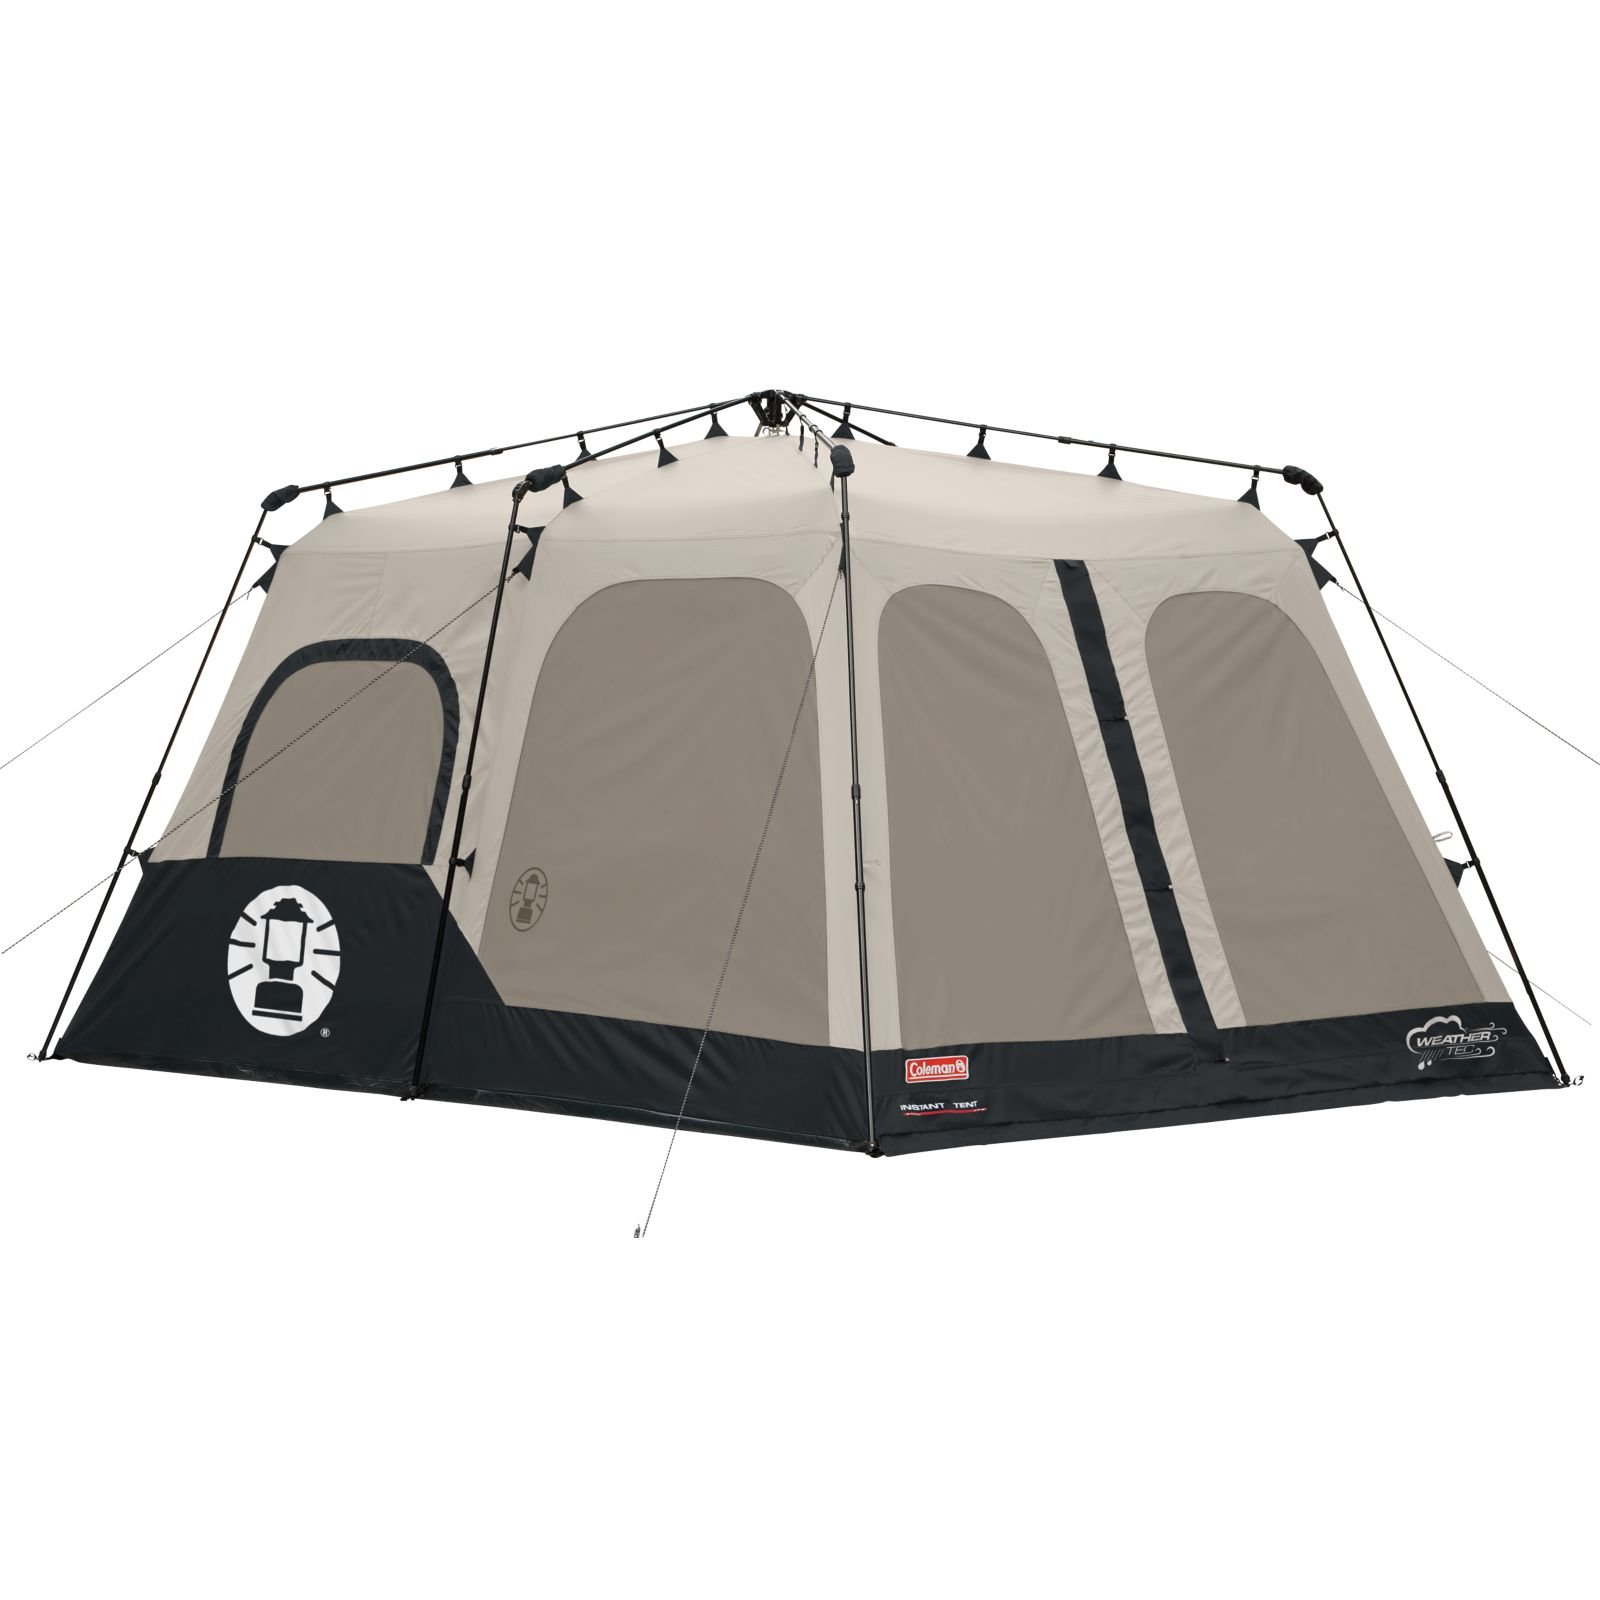 Details about Coleman 2000018295 8-Person Instant Tent Black (14x10 Feet) Free Shipping  sc 1 st  eBay & Coleman 2000018295 8-Person Instant Tent Black (14x10 Feet) Free ...